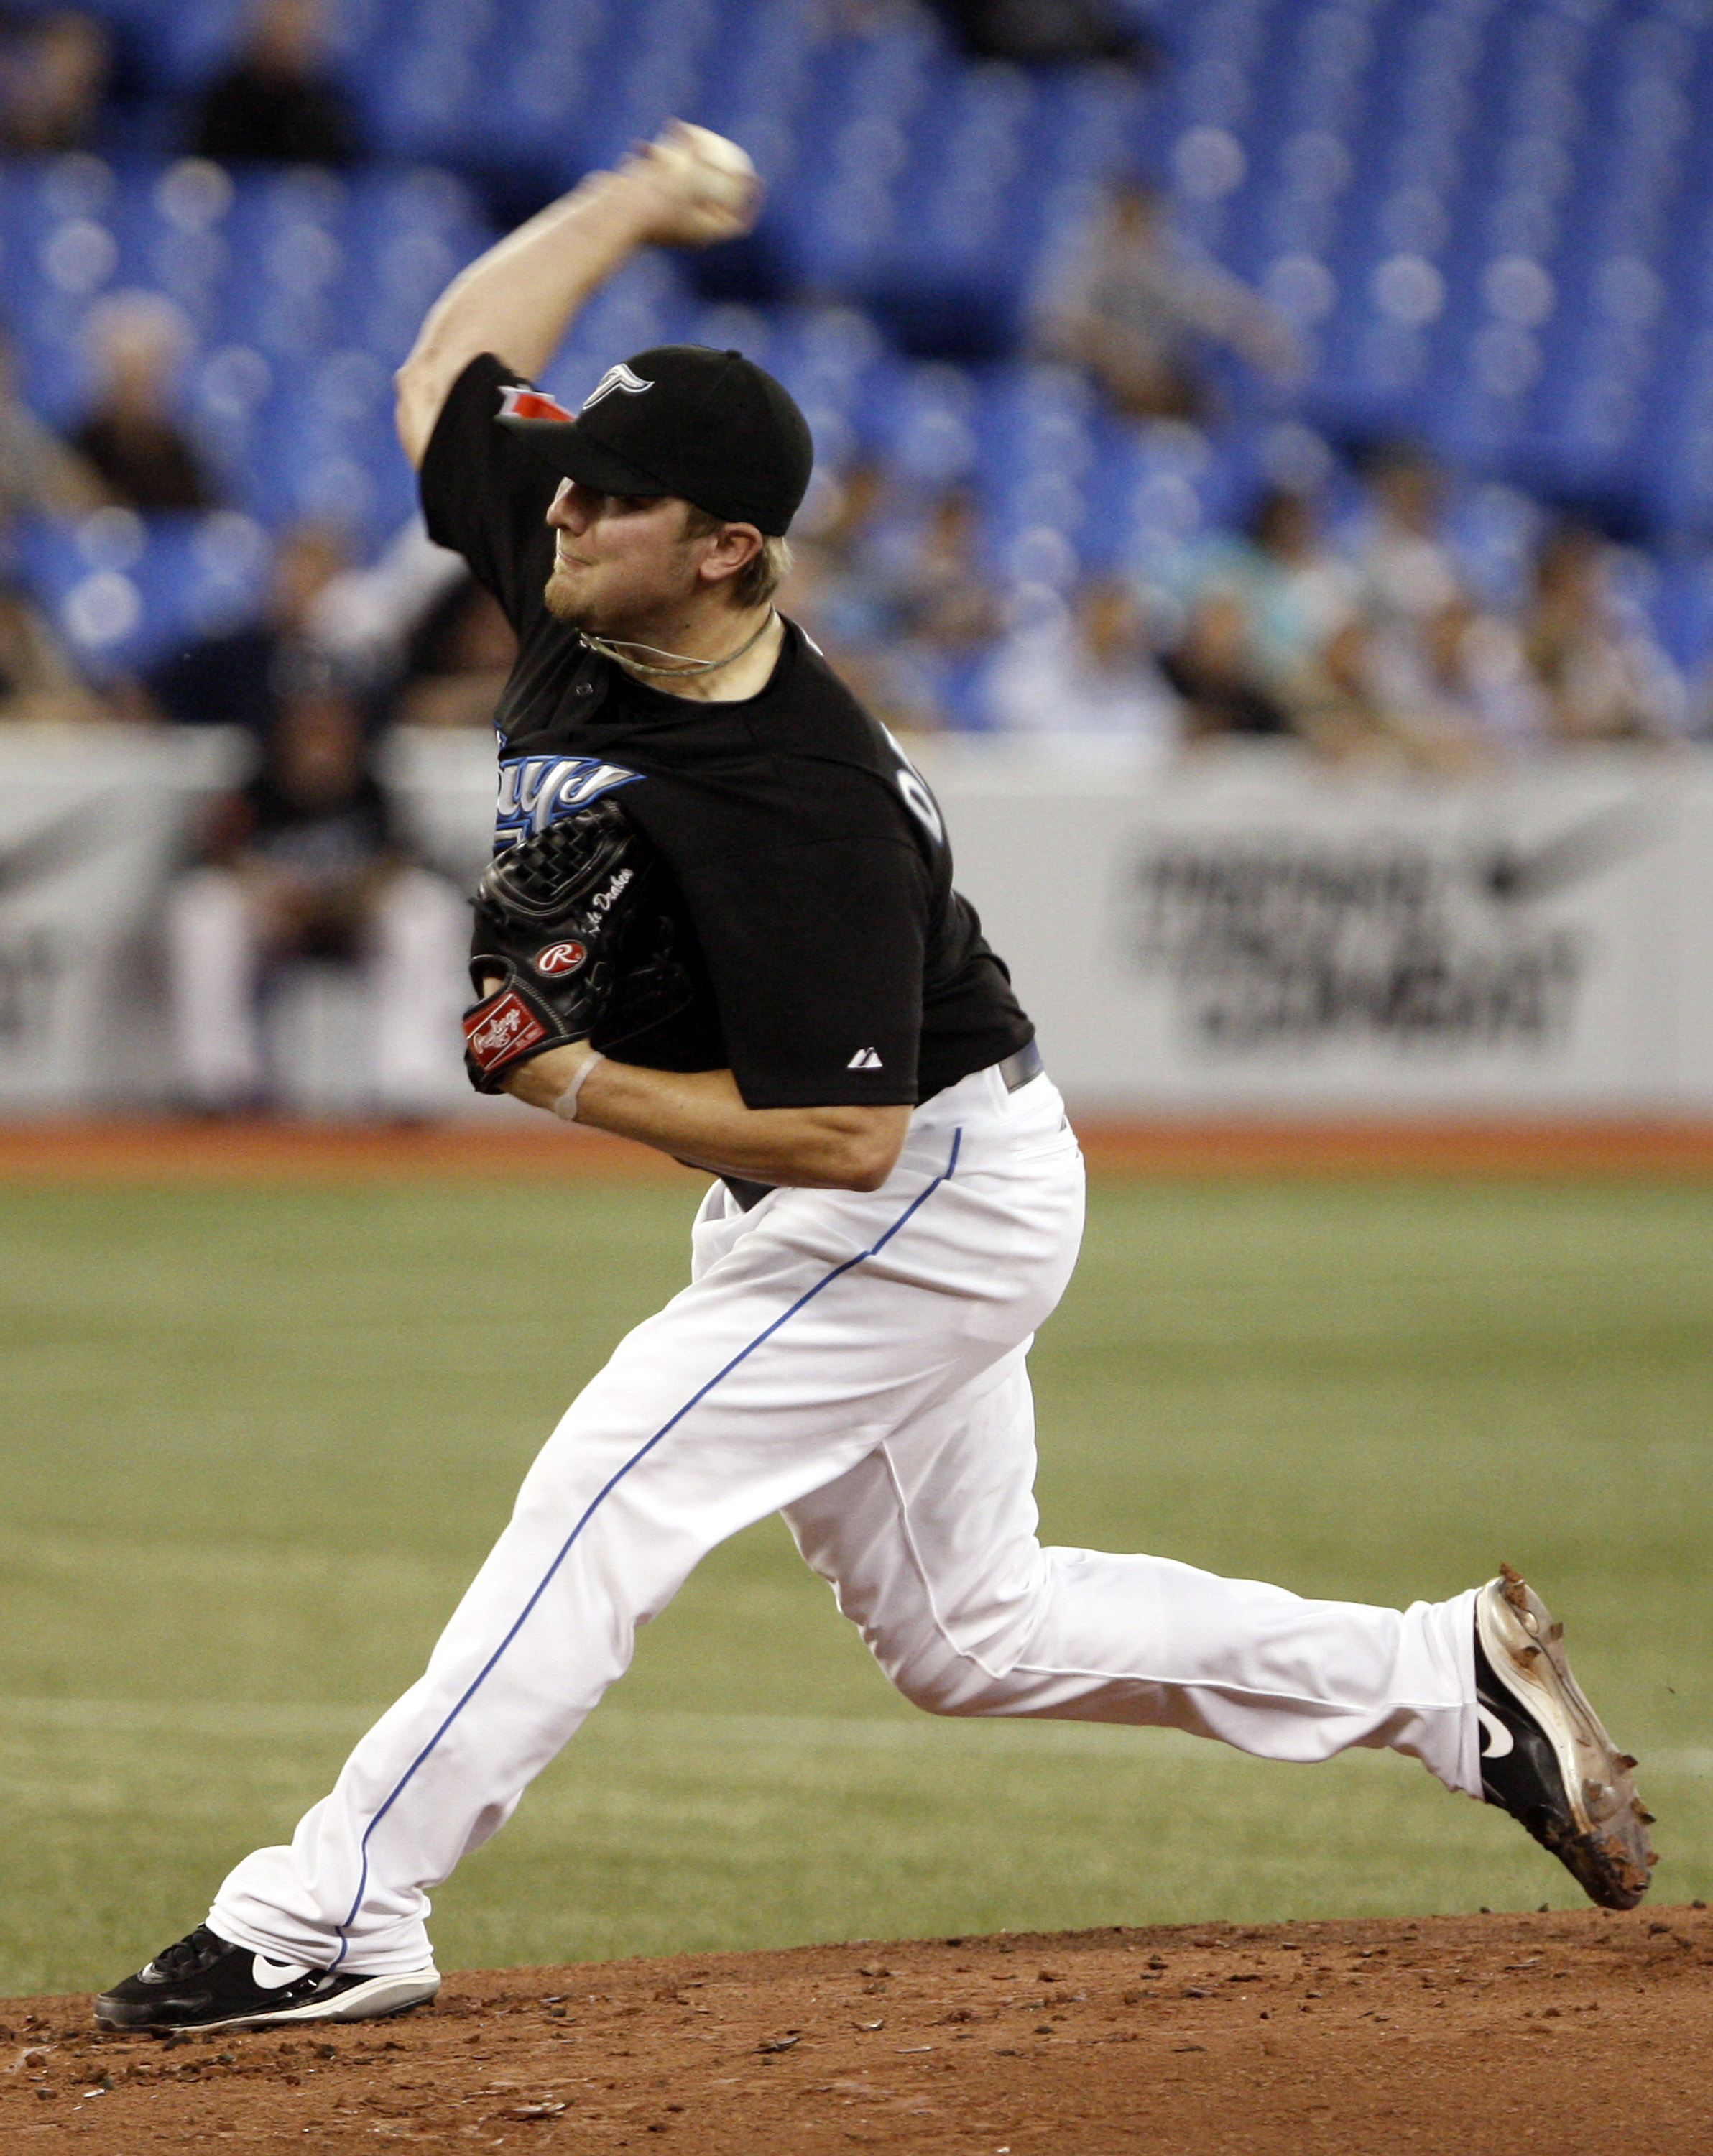 TORONTO, ON - SEPTEMBER 28: Kyle Drabek #4 of the Toronto Blue Jays throws agianst the New York Yankees during an MLB game at the Rogers Centre September 28, 2010 in Toronto, Ontario, Canada. (Photo by Abelimages/Getty Images)